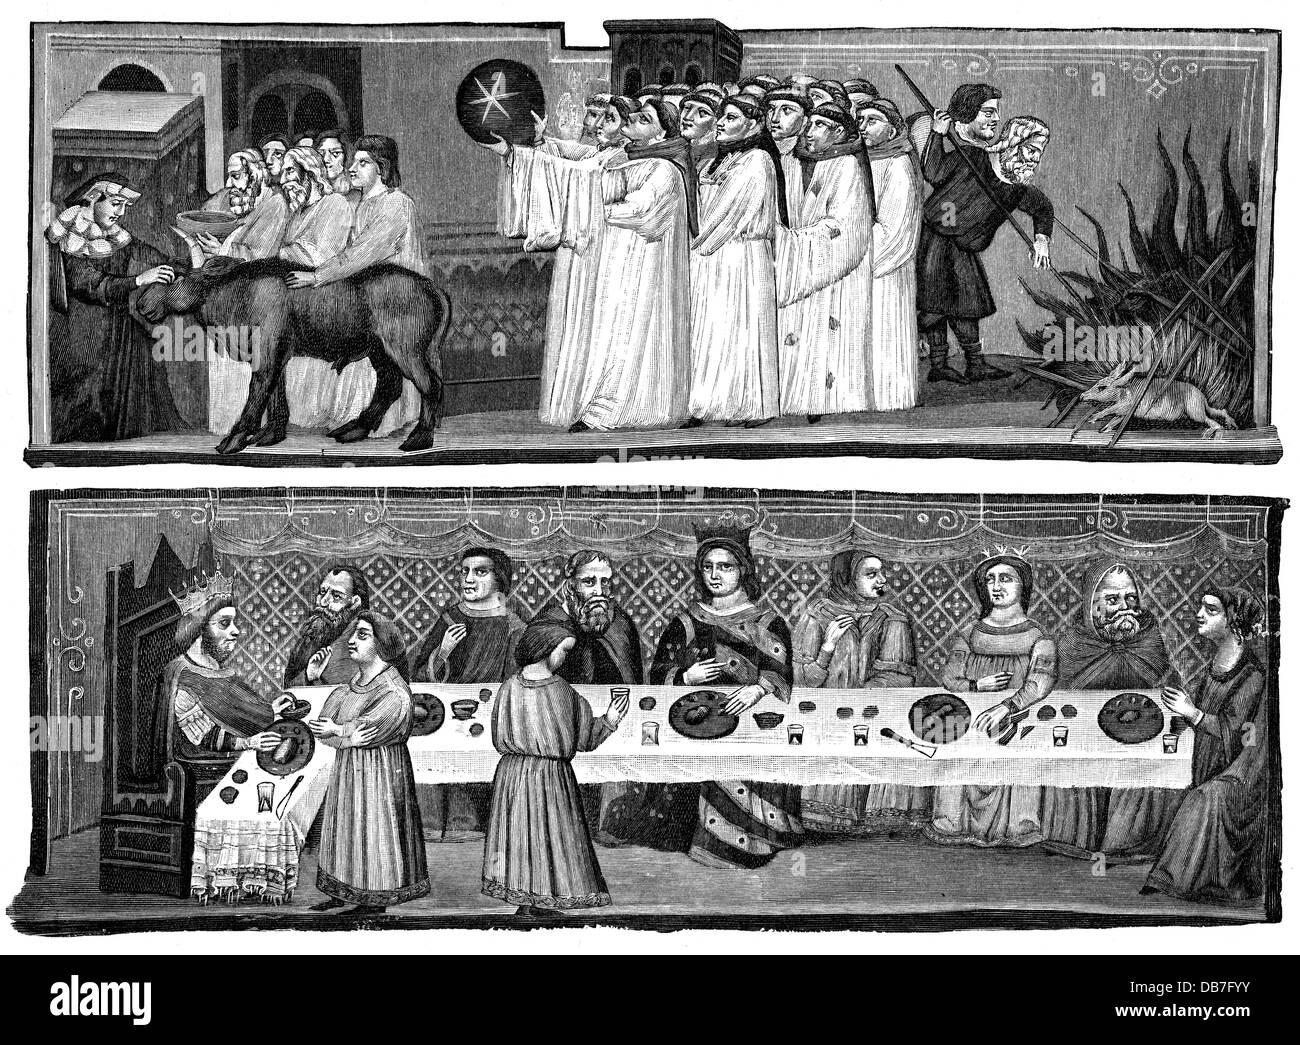 Caesar, Gaius Julius, 13.7.100 - 15.3.44 BC, Roman politician, dictator 49 and since 47, animal sacrifice and procession - Stock Image